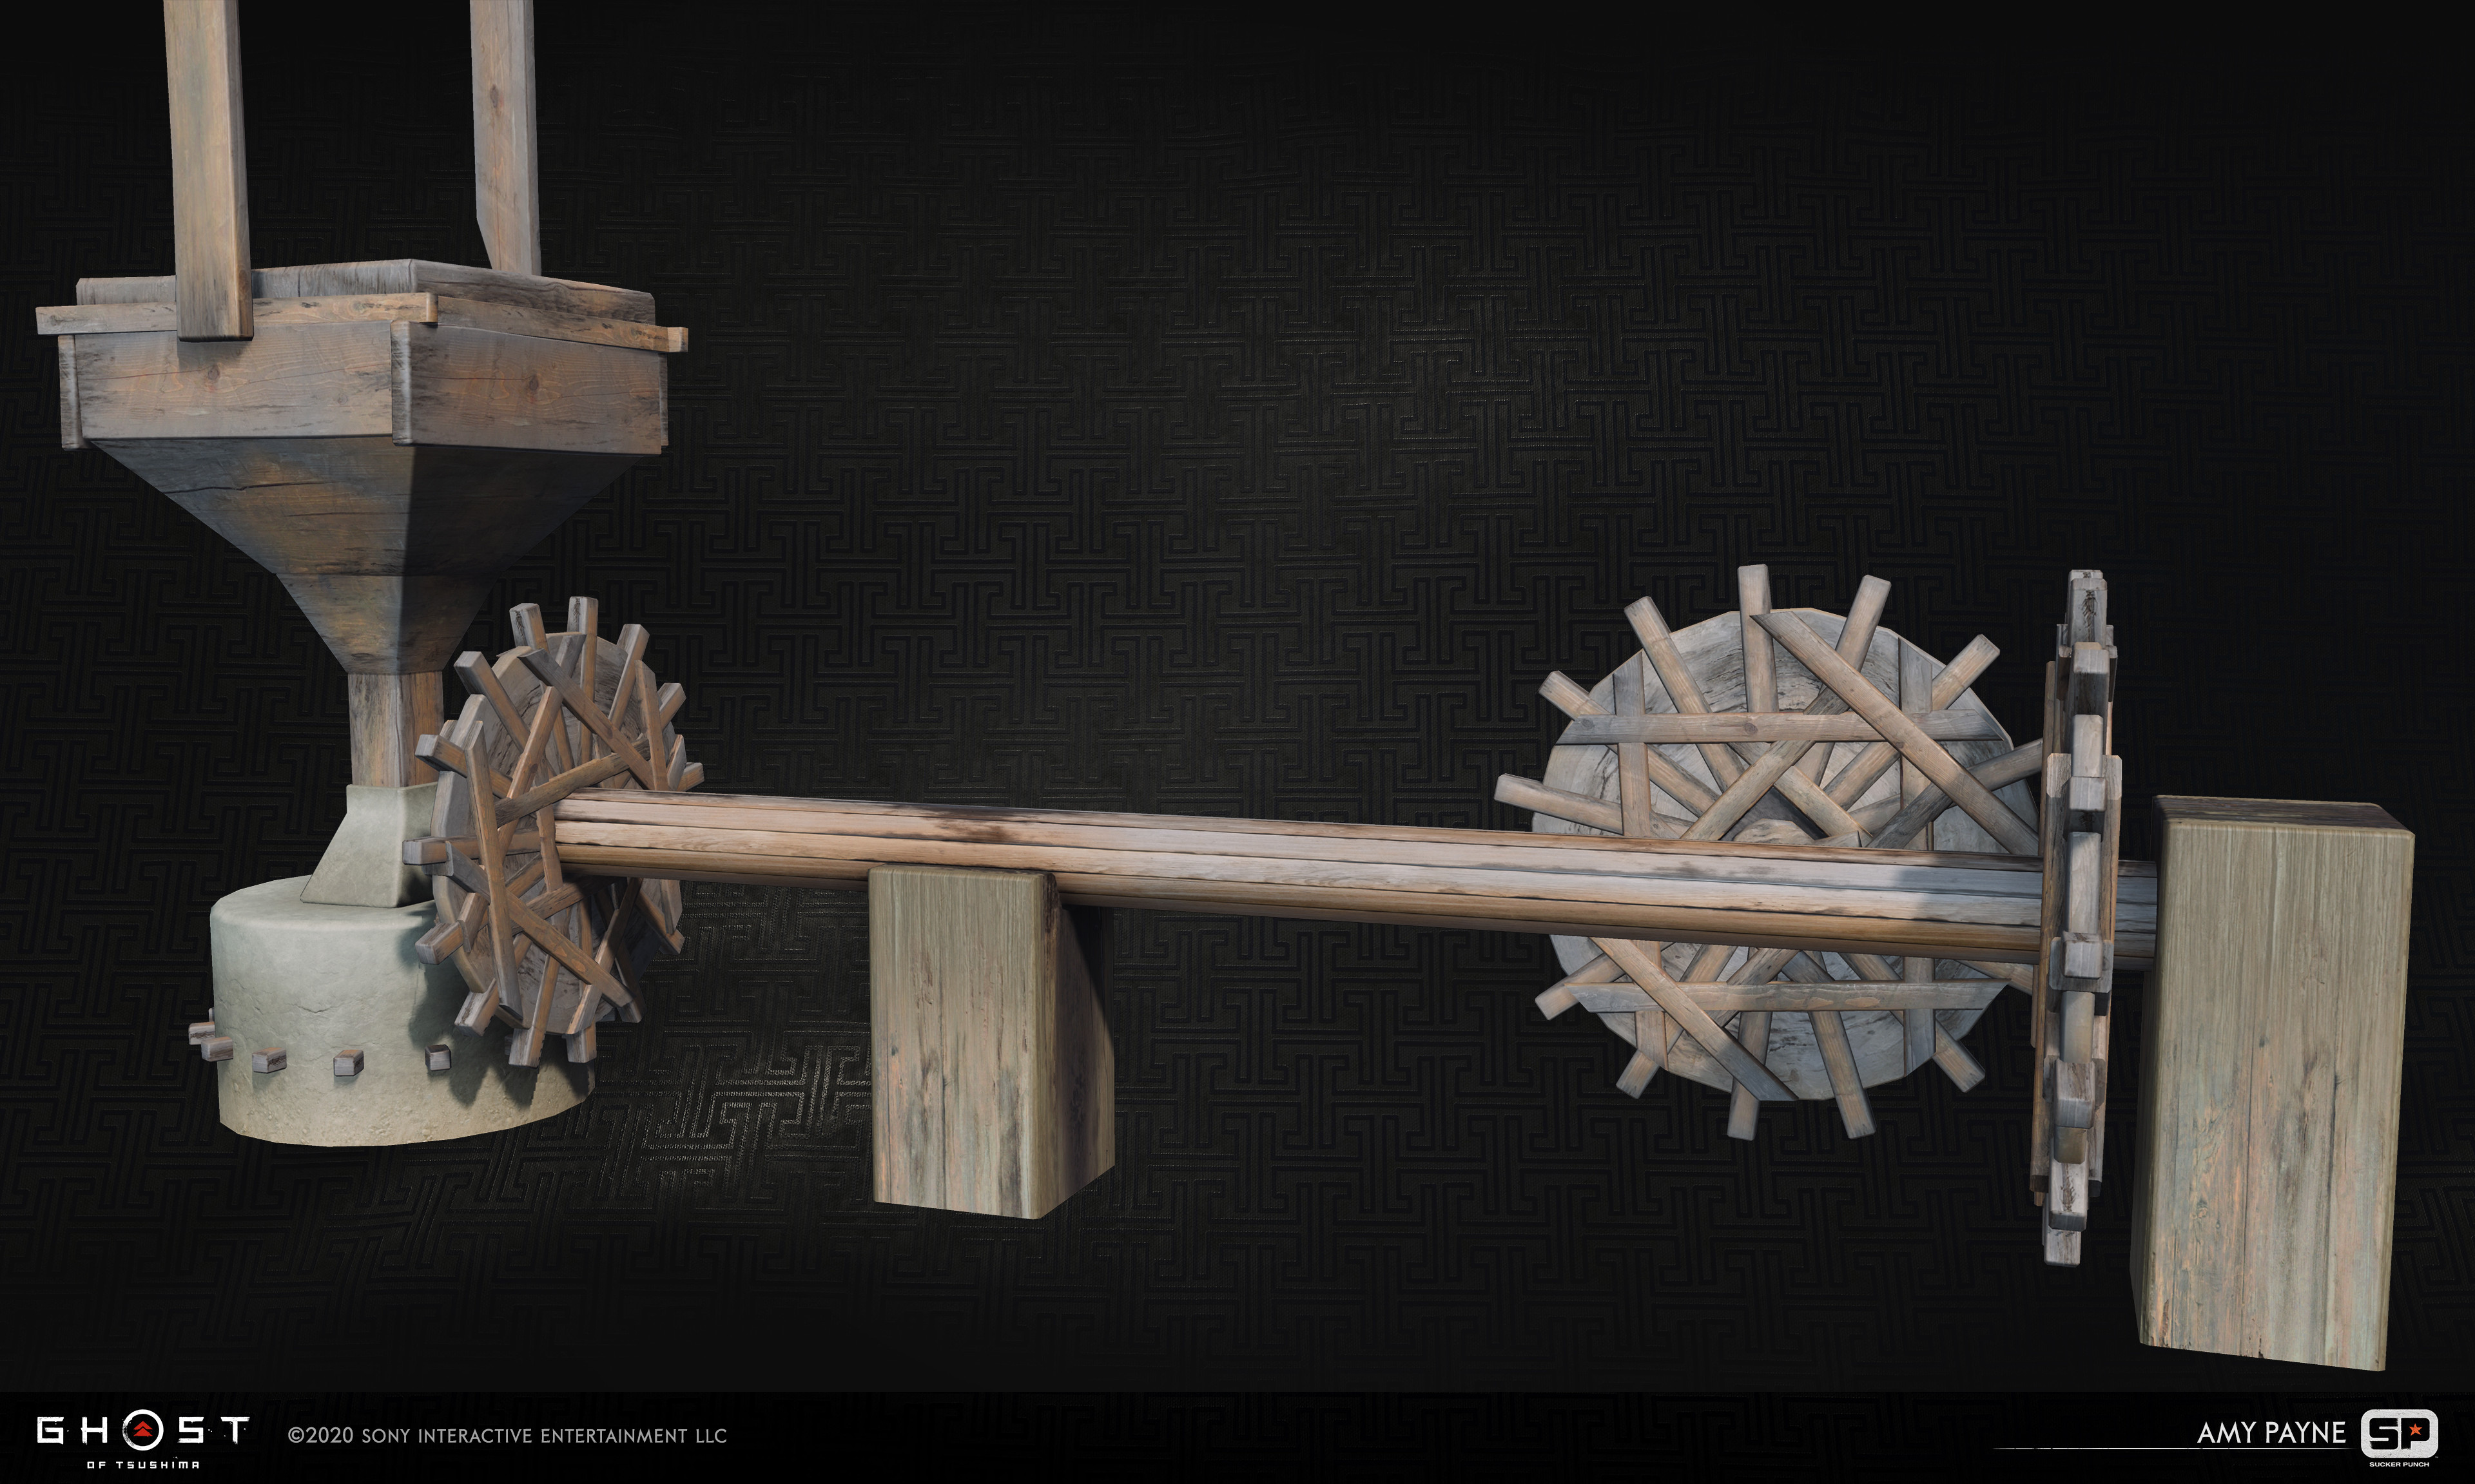 Water wheel gears for the interior of water wheel houses. Responsible for modeling and vertex painting.